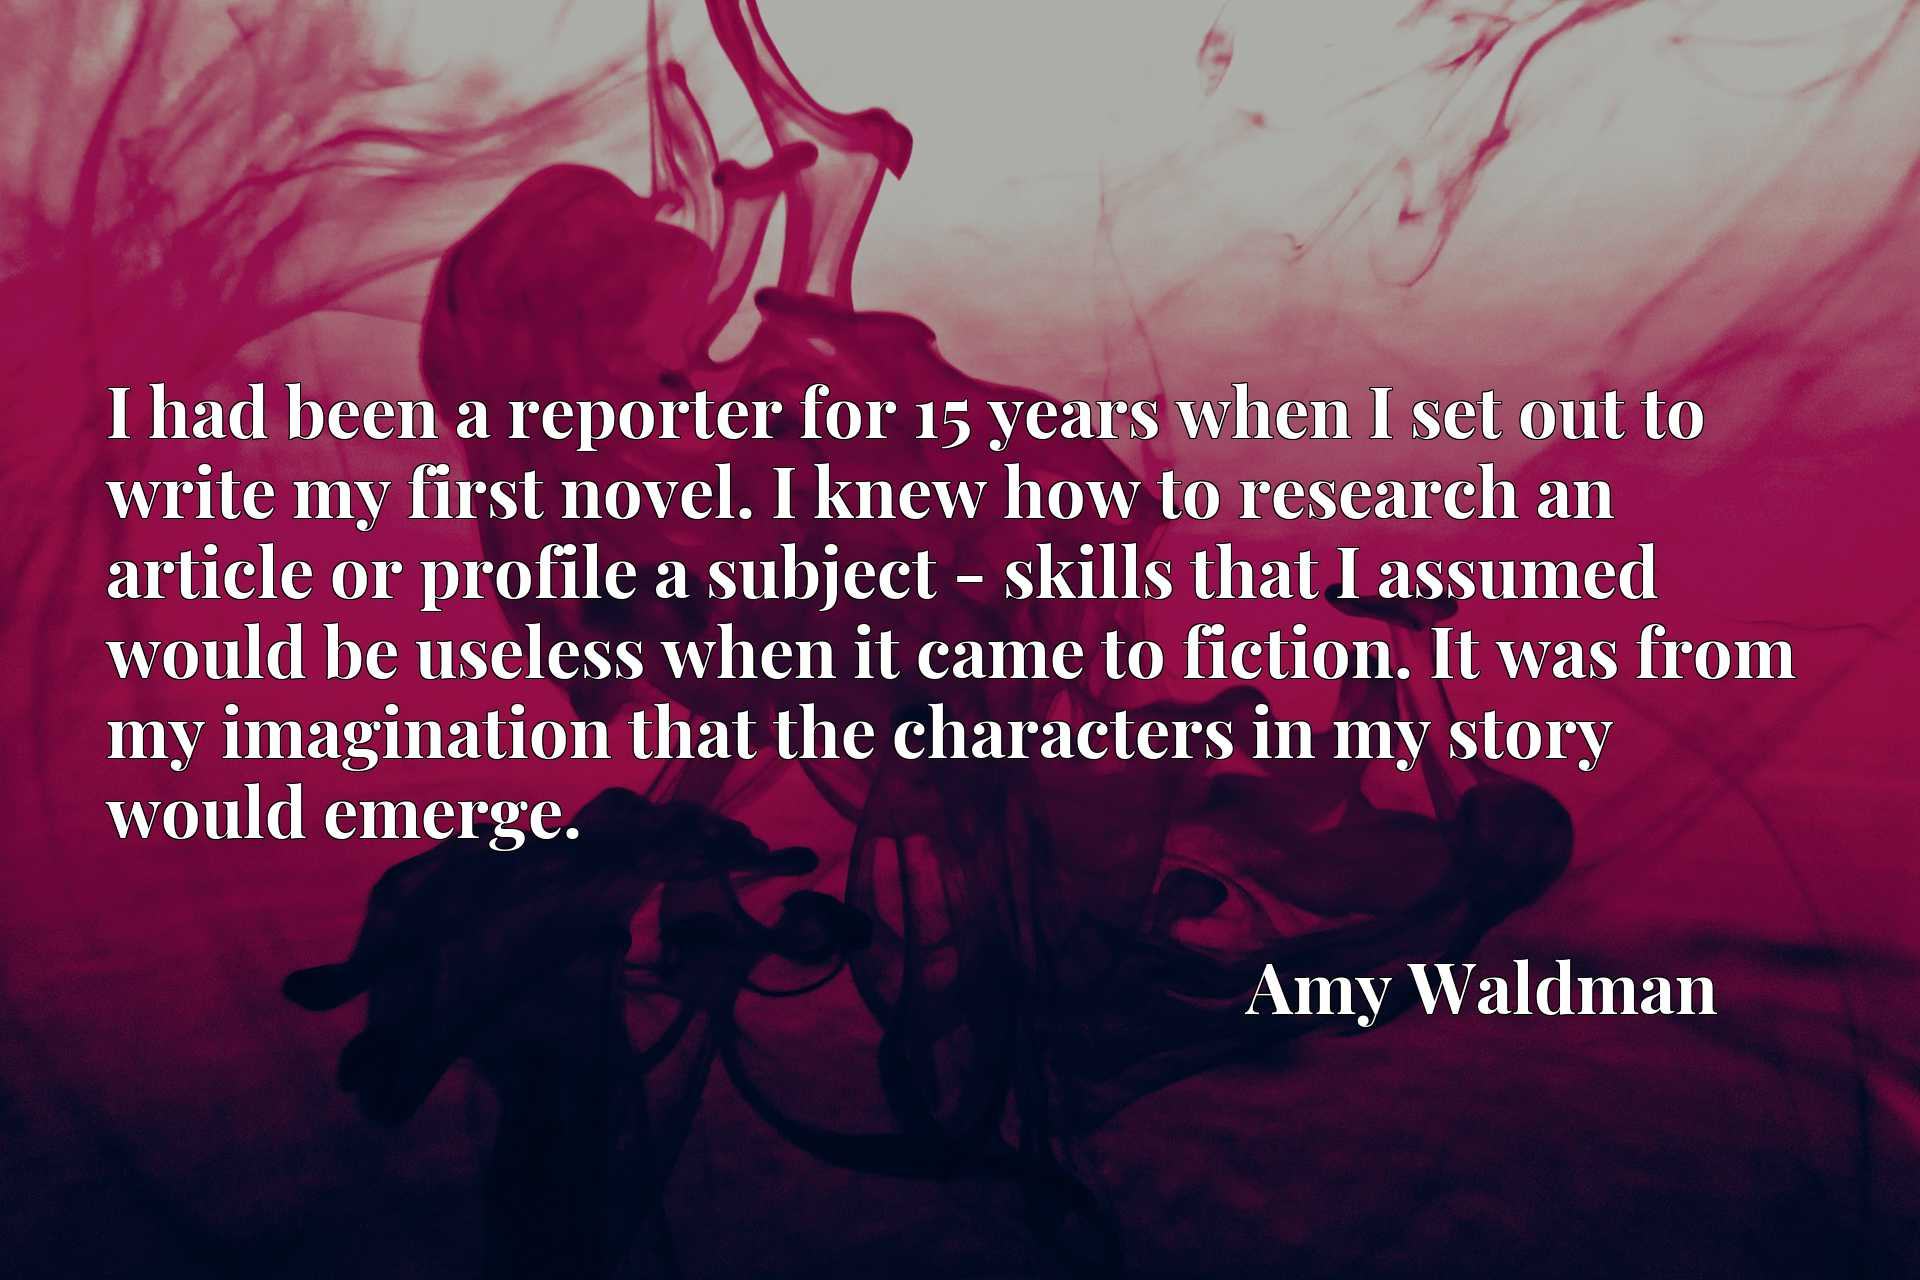 I had been a reporter for 15 years when I set out to write my first novel. I knew how to research an article or profile a subject - skills that I assumed would be useless when it came to fiction. It was from my imagination that the characters in my story would emerge.